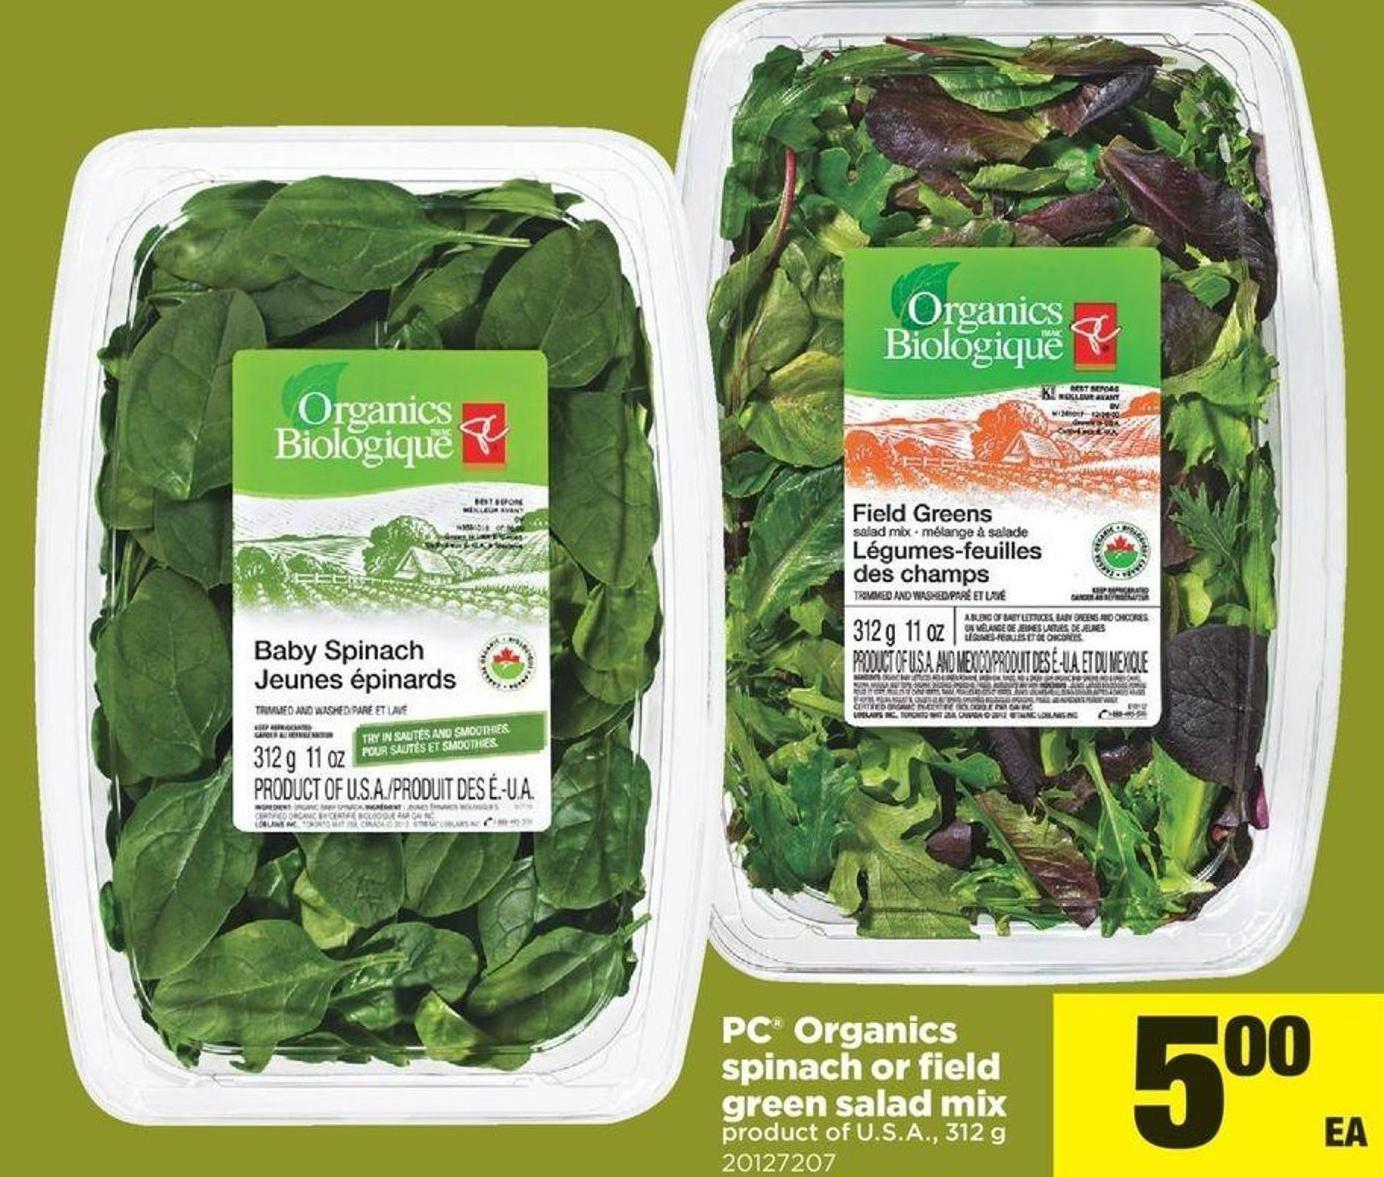 https://resources.salewhale.ca/products_sales_images/F/8/7/24F8/pc-organics-spinach-or-field-green-salad-mix-312-g.jpeg